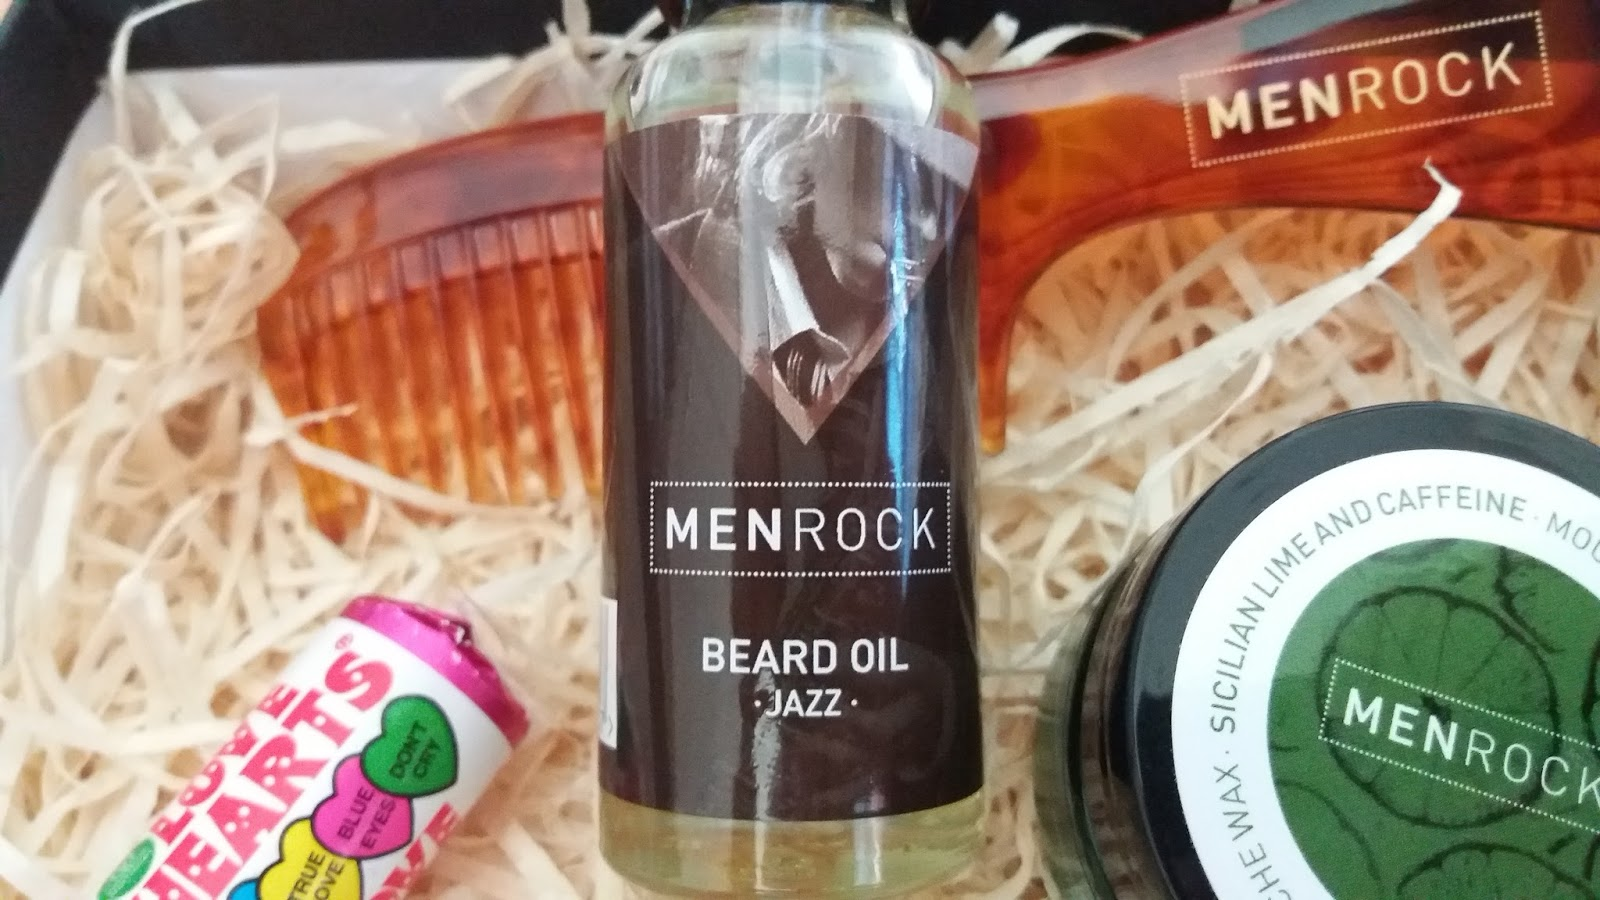 Menrock grooming products